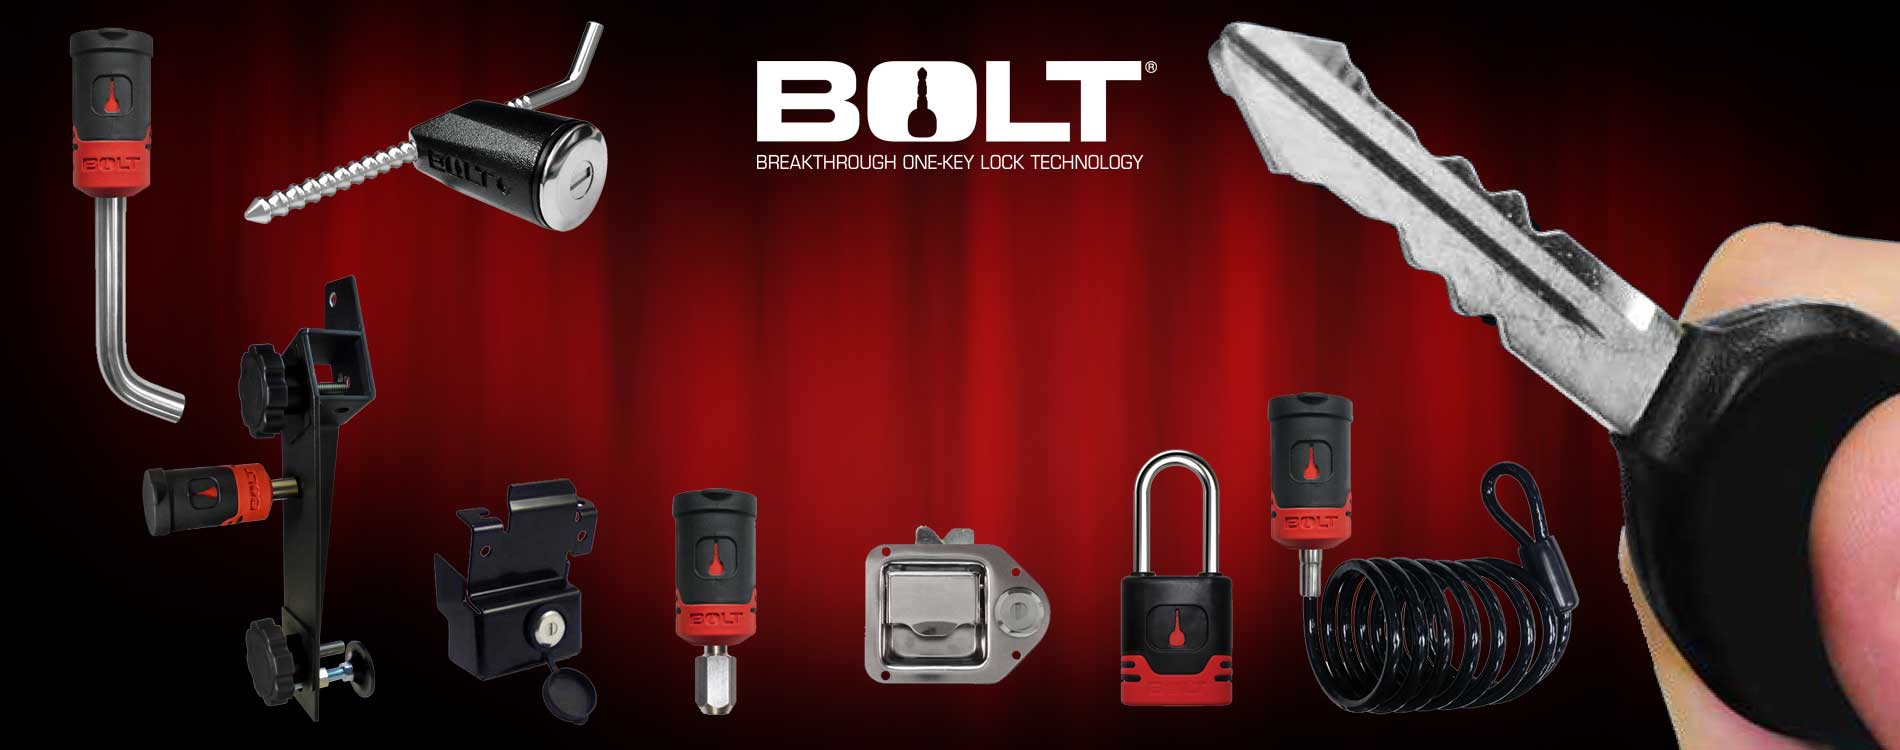 Bolt Lock Self-Keying Locks